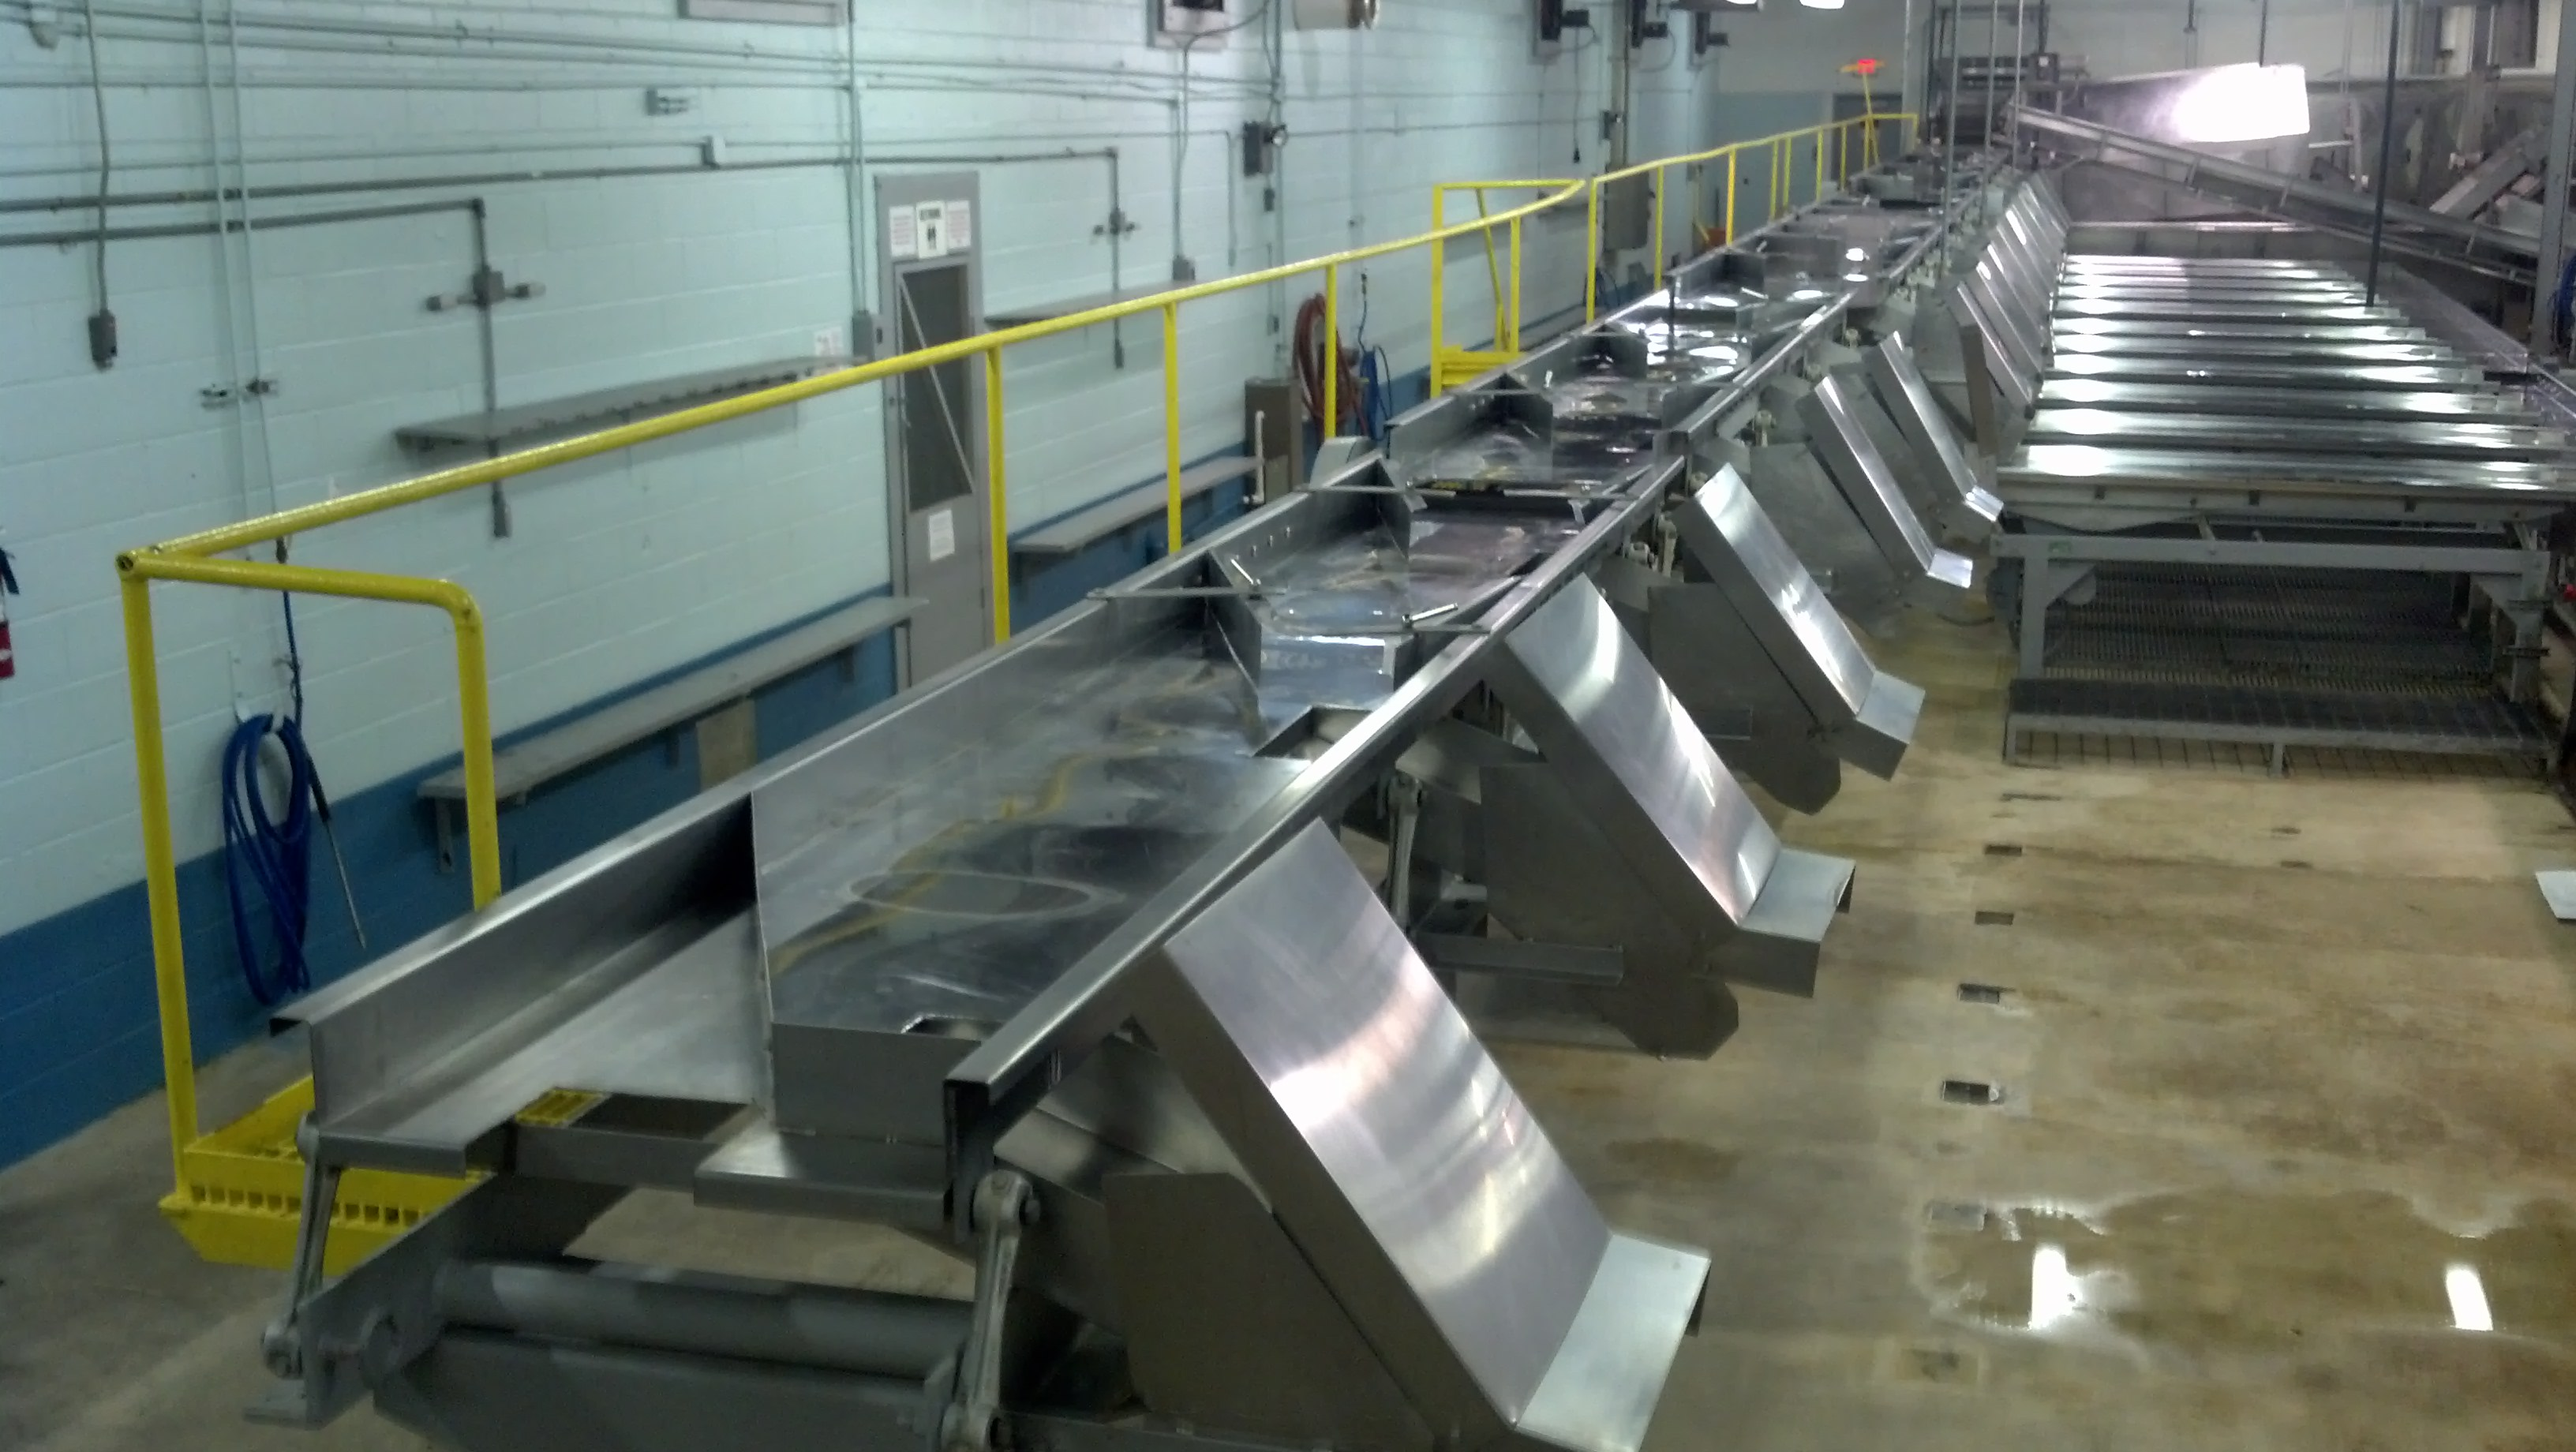 Commercial Manuf & Supply Co stainless steel, sanitary/food, vegetable processing line.  Vibratory feeder/conveyor sorting and inspection processing line consisting of the following: (12) Each (Ref GF-FT1 - 12) Vibratory feeder inspection tables, approx 24